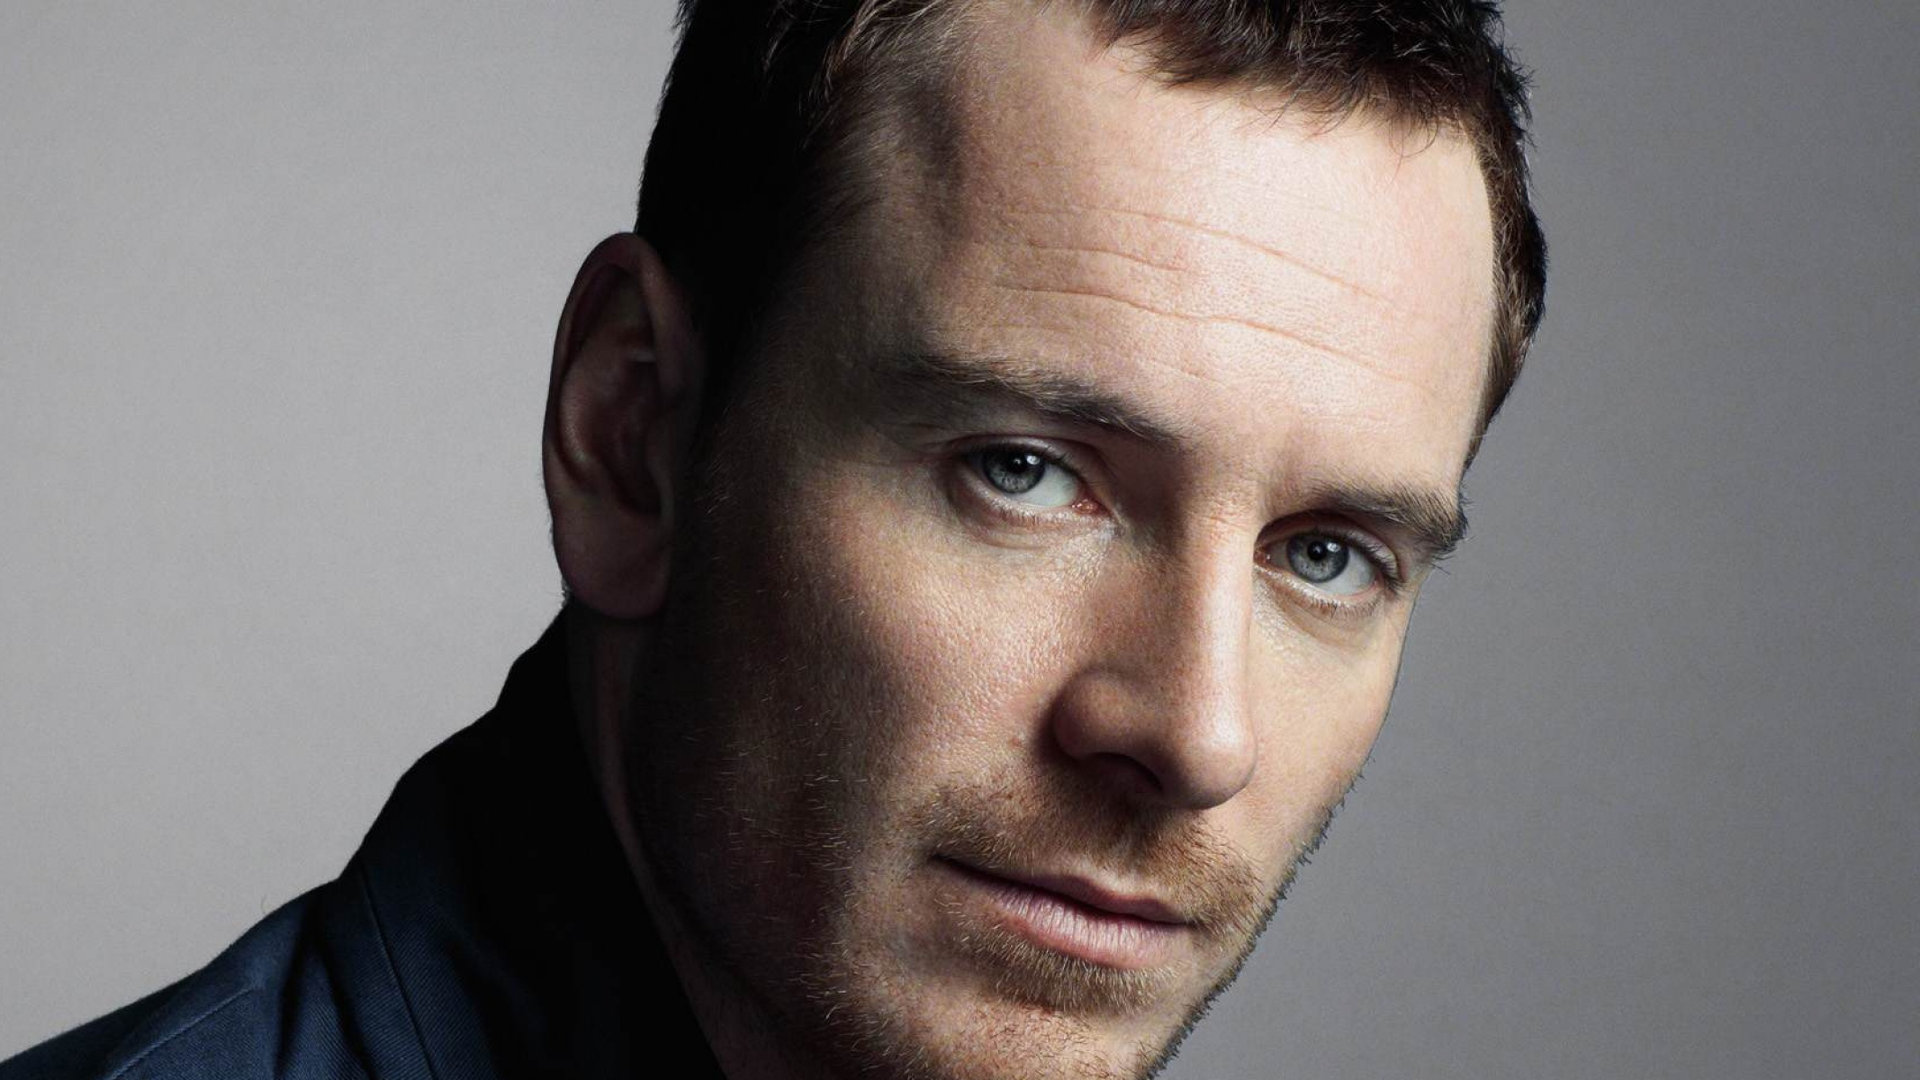 Free download Michael Fassbender background ID:305241 full hd 1080p for computer